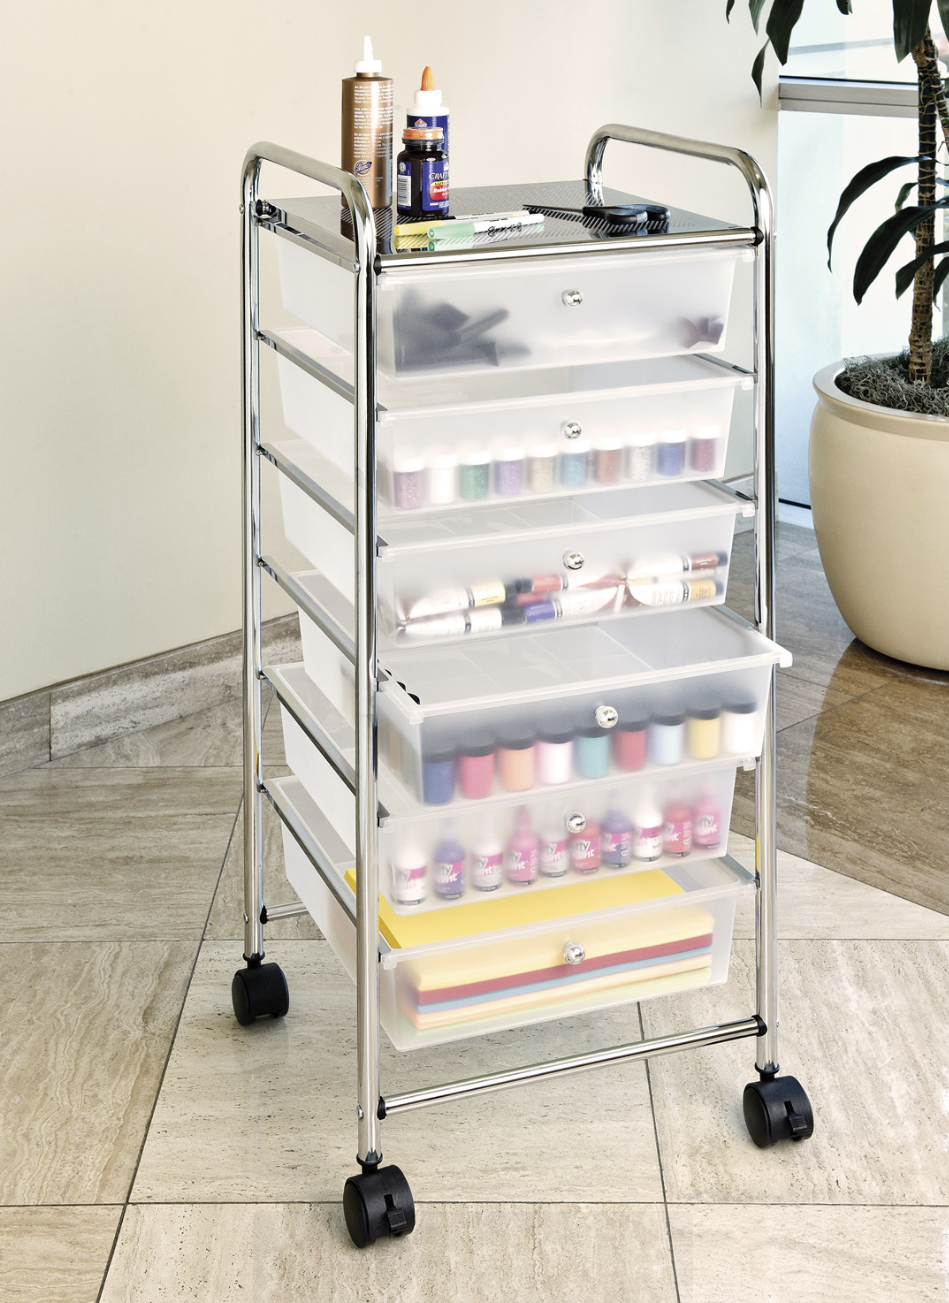 SEVILLE CLASSICS LARGE 6-DRAWER STORAGE BIN ORGANIZER CART, WHITE Home & Garden